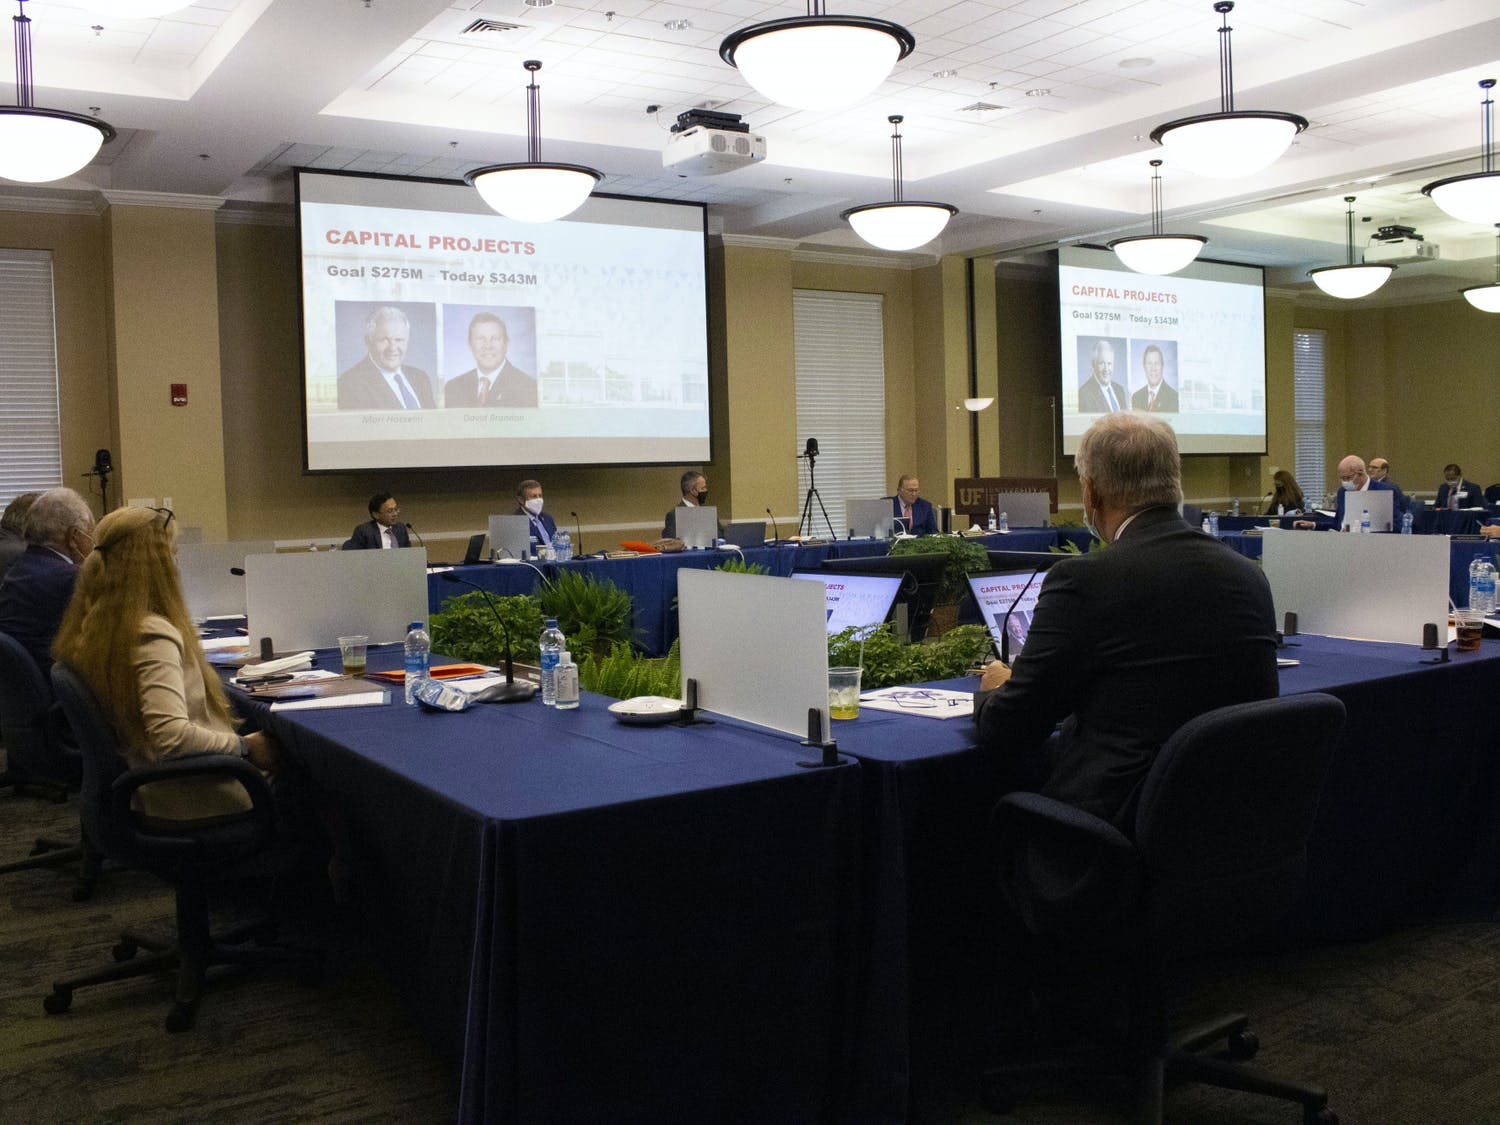 The UF Board of Trustees discusses capital projects inside the Emerson Alumni Hall on Thursday, March 18, 2021.